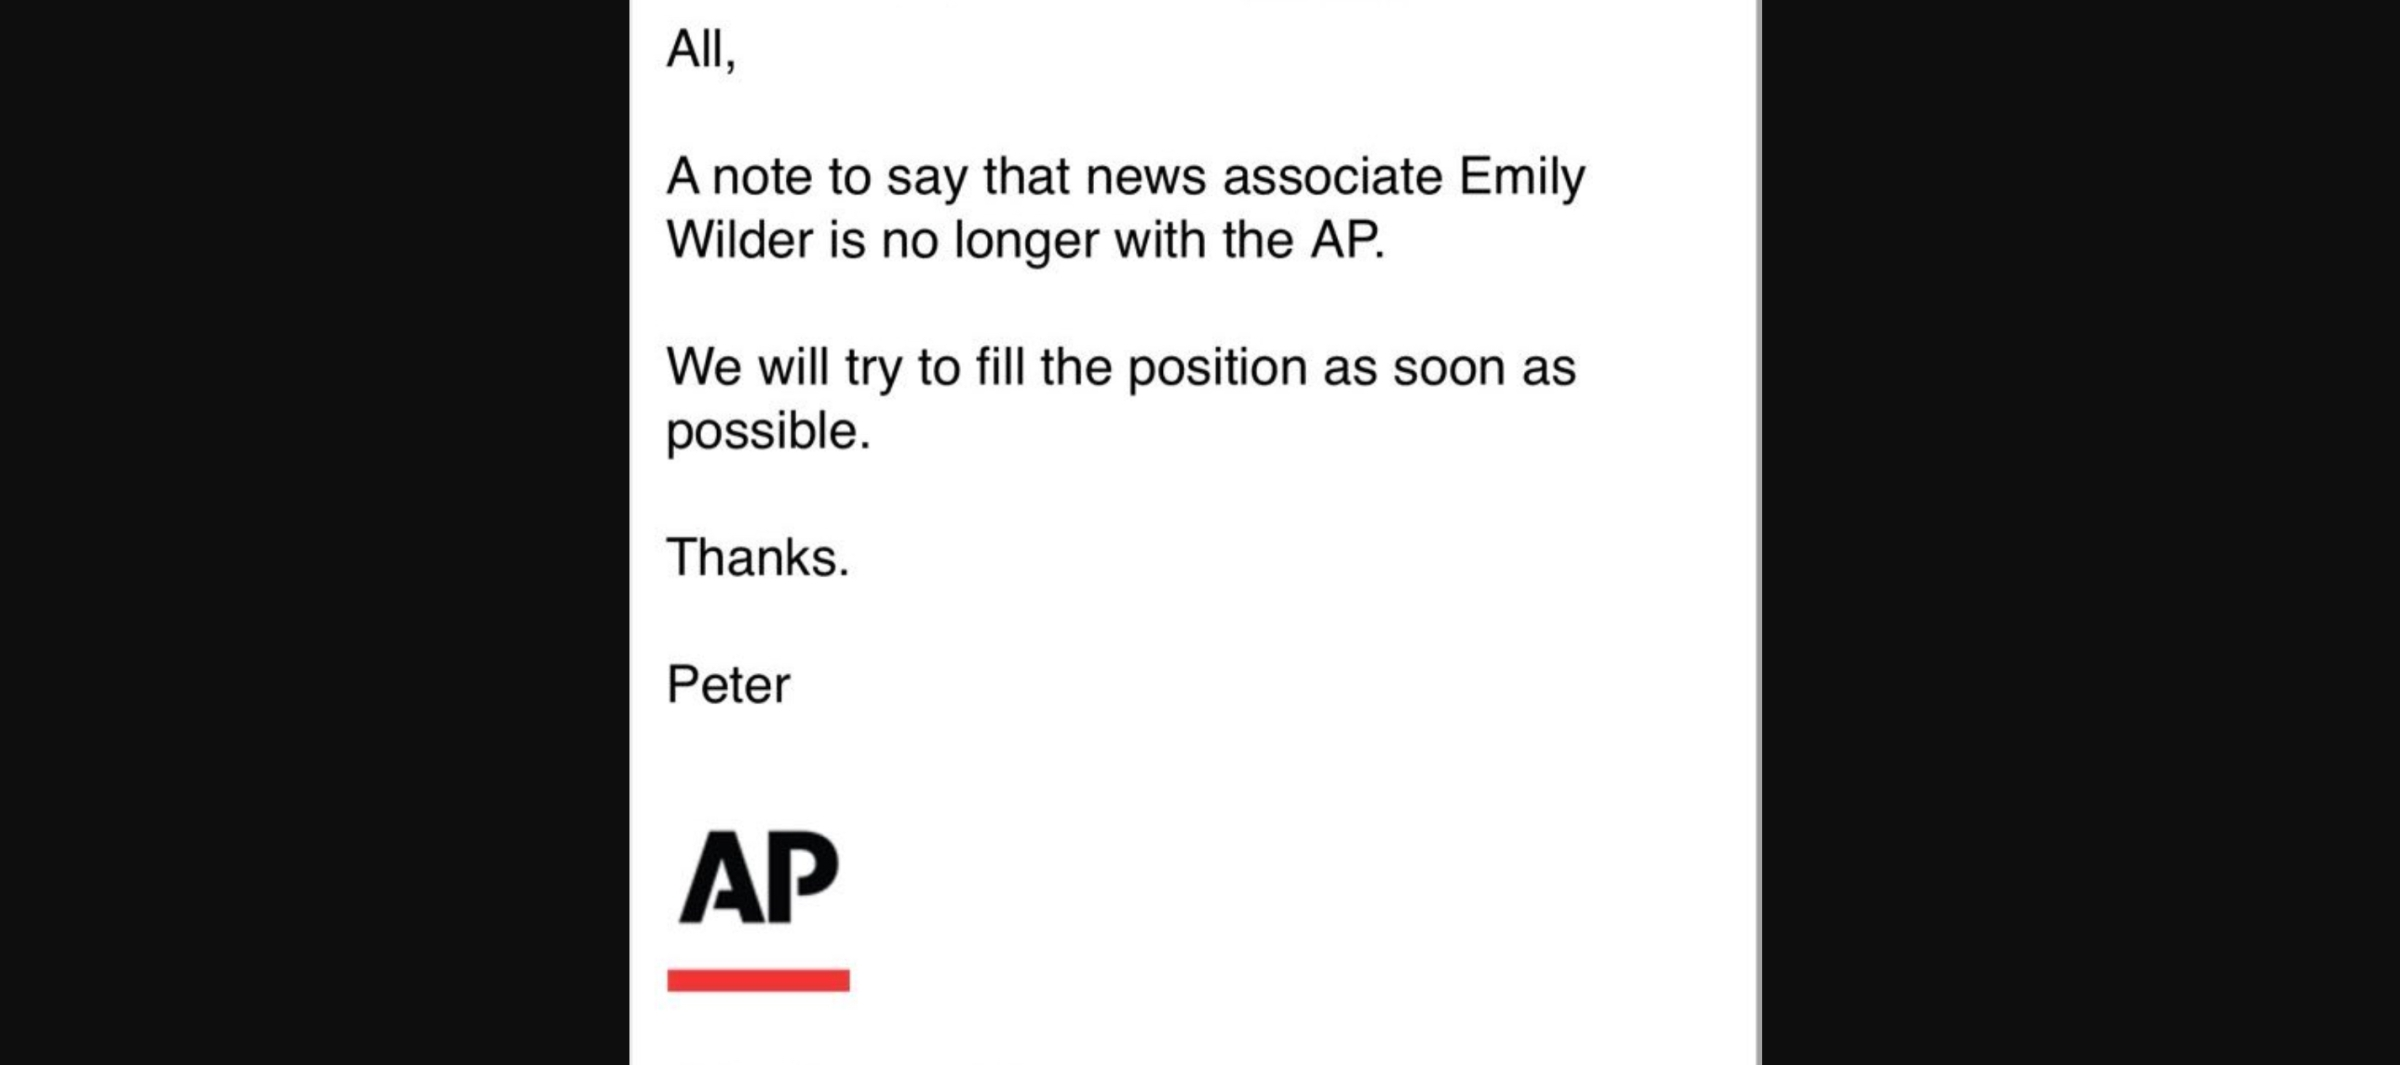 The note saying Emily Wilder had been fired